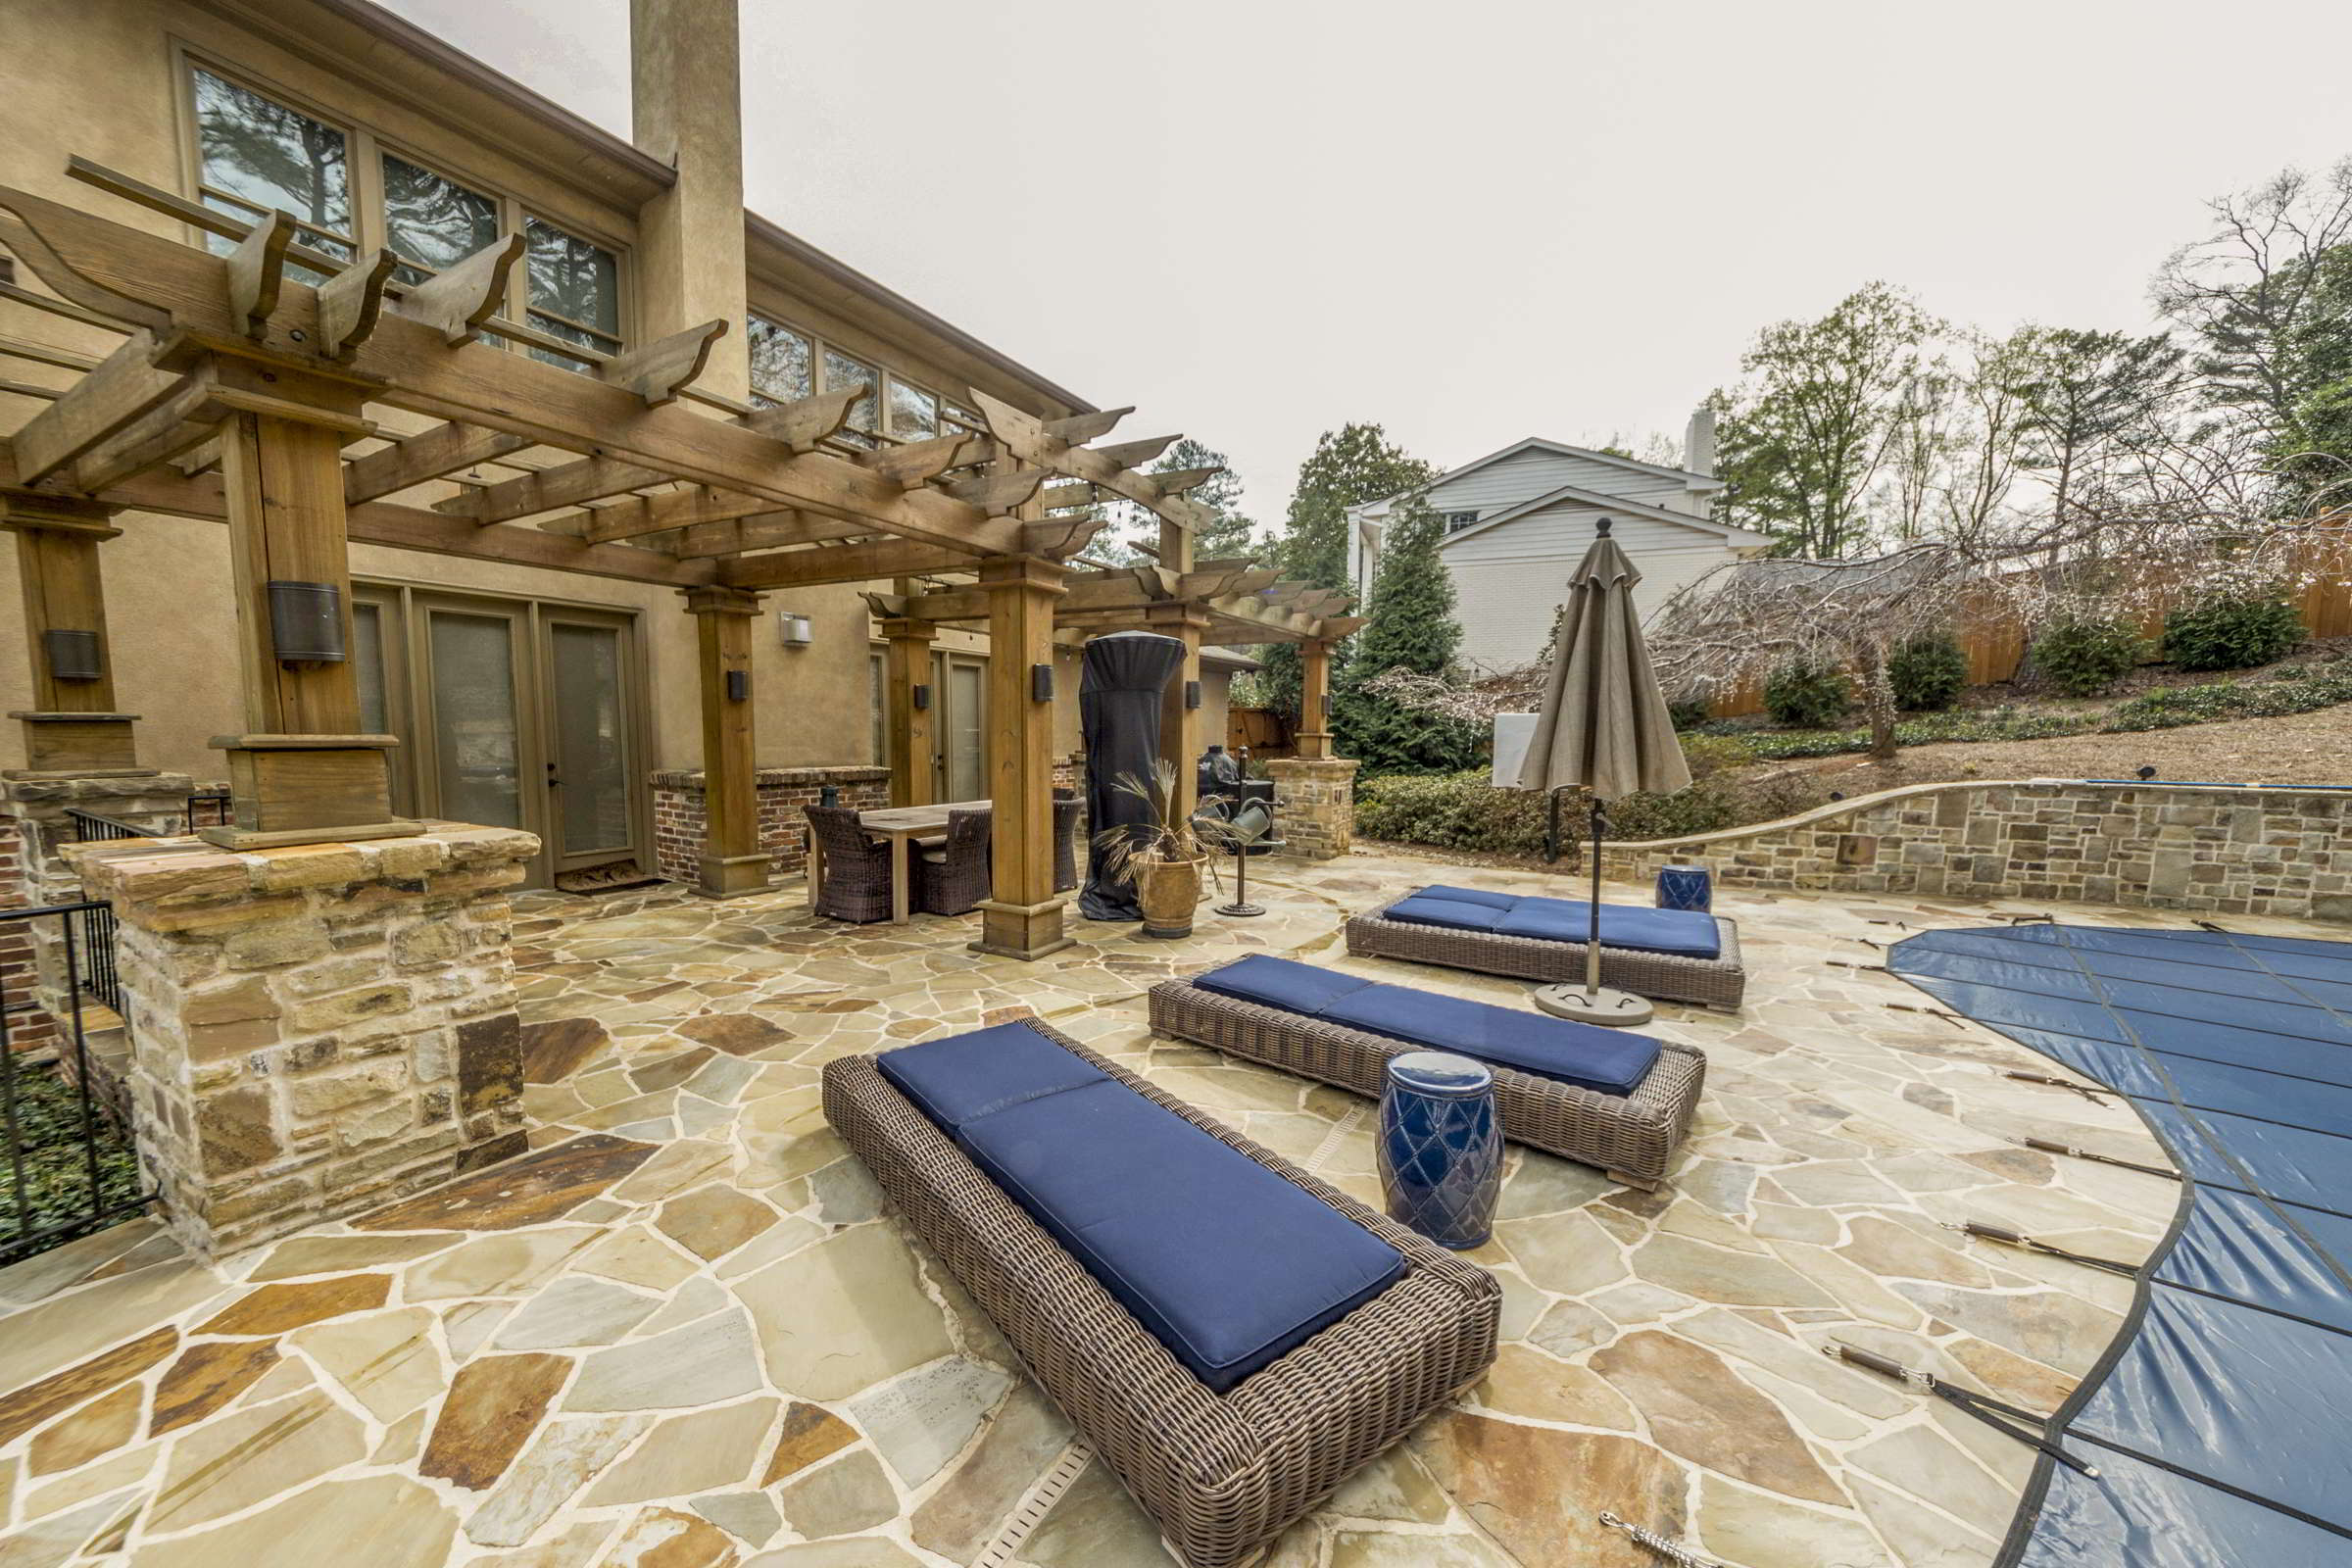 wooden pergola over stone poolside deck patio with blue lounge chairs and umbrella